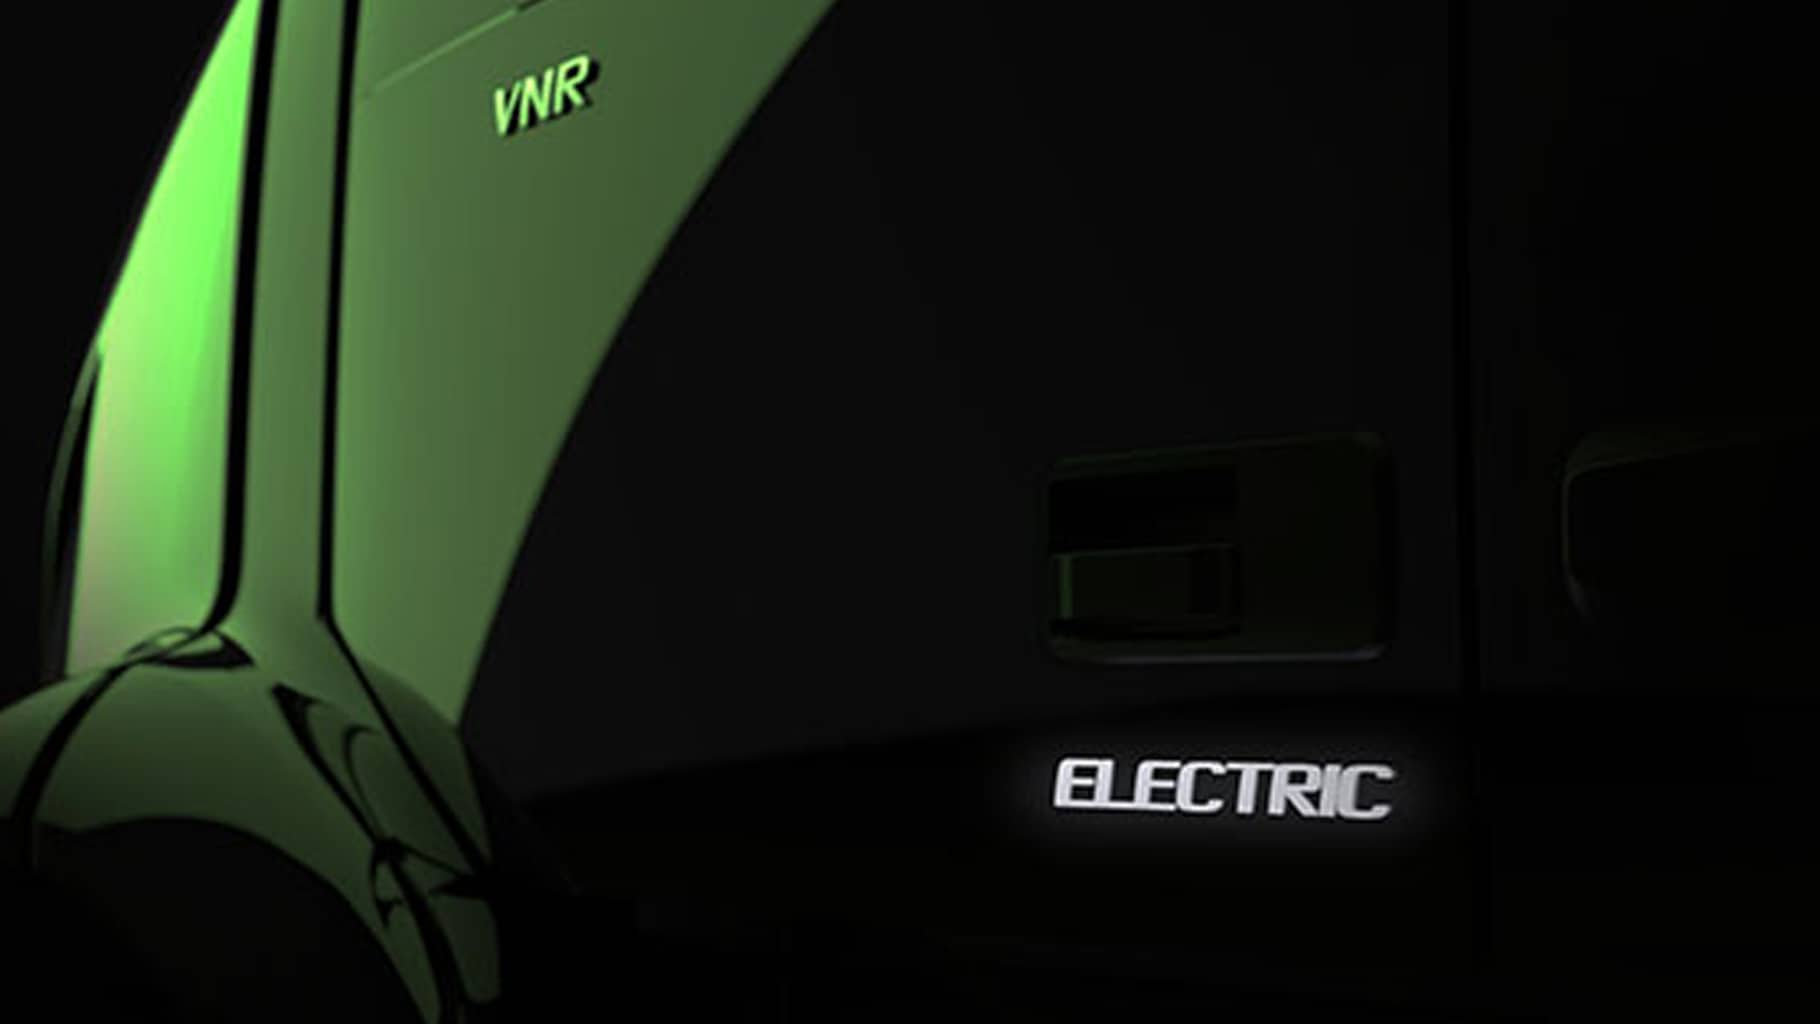 Electric Vehicle Manufacturers North America First Volvo Electric Truck Expected This Year As Part Of A